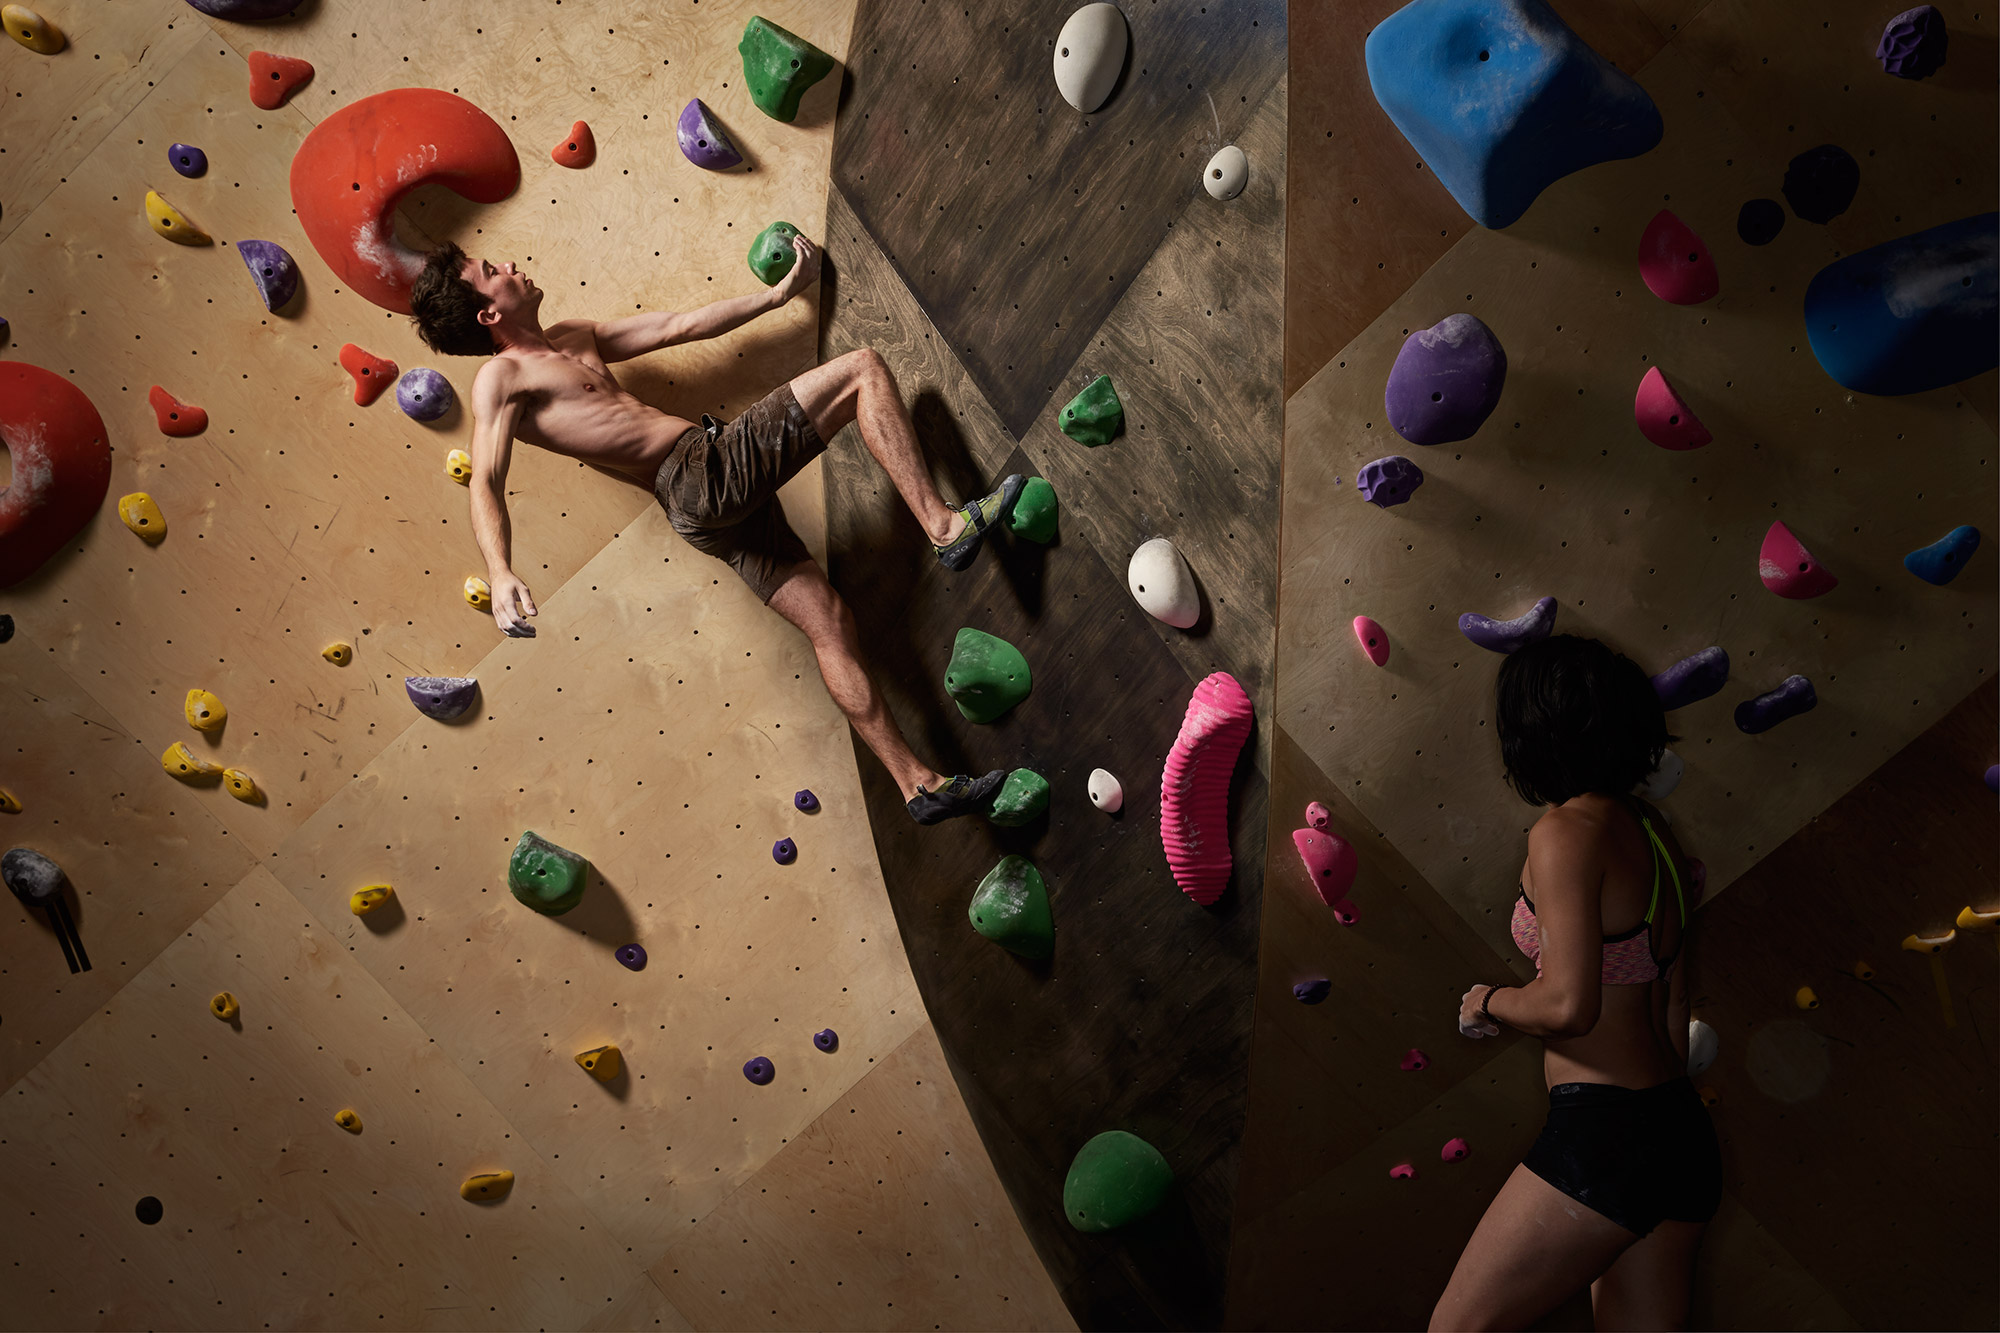 This Rock Climbing Gym Wants to Disrupt Your Work-Life Balance